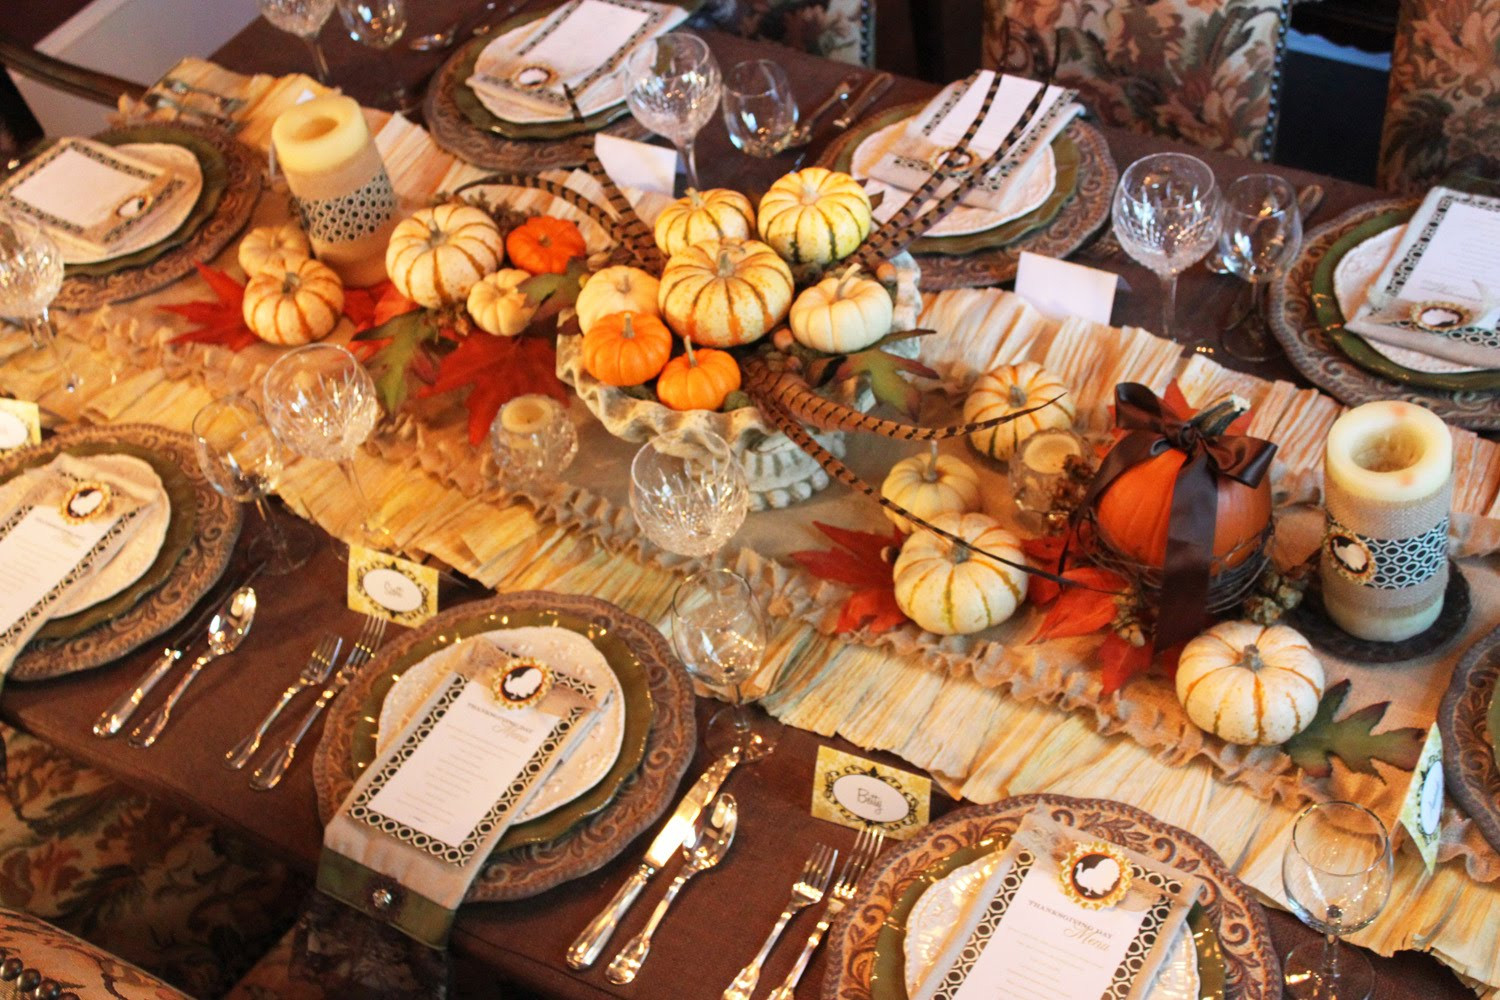 Table Decorations For Thanksgiving  A feast for the eyes Thanksgiving dinner table decorations